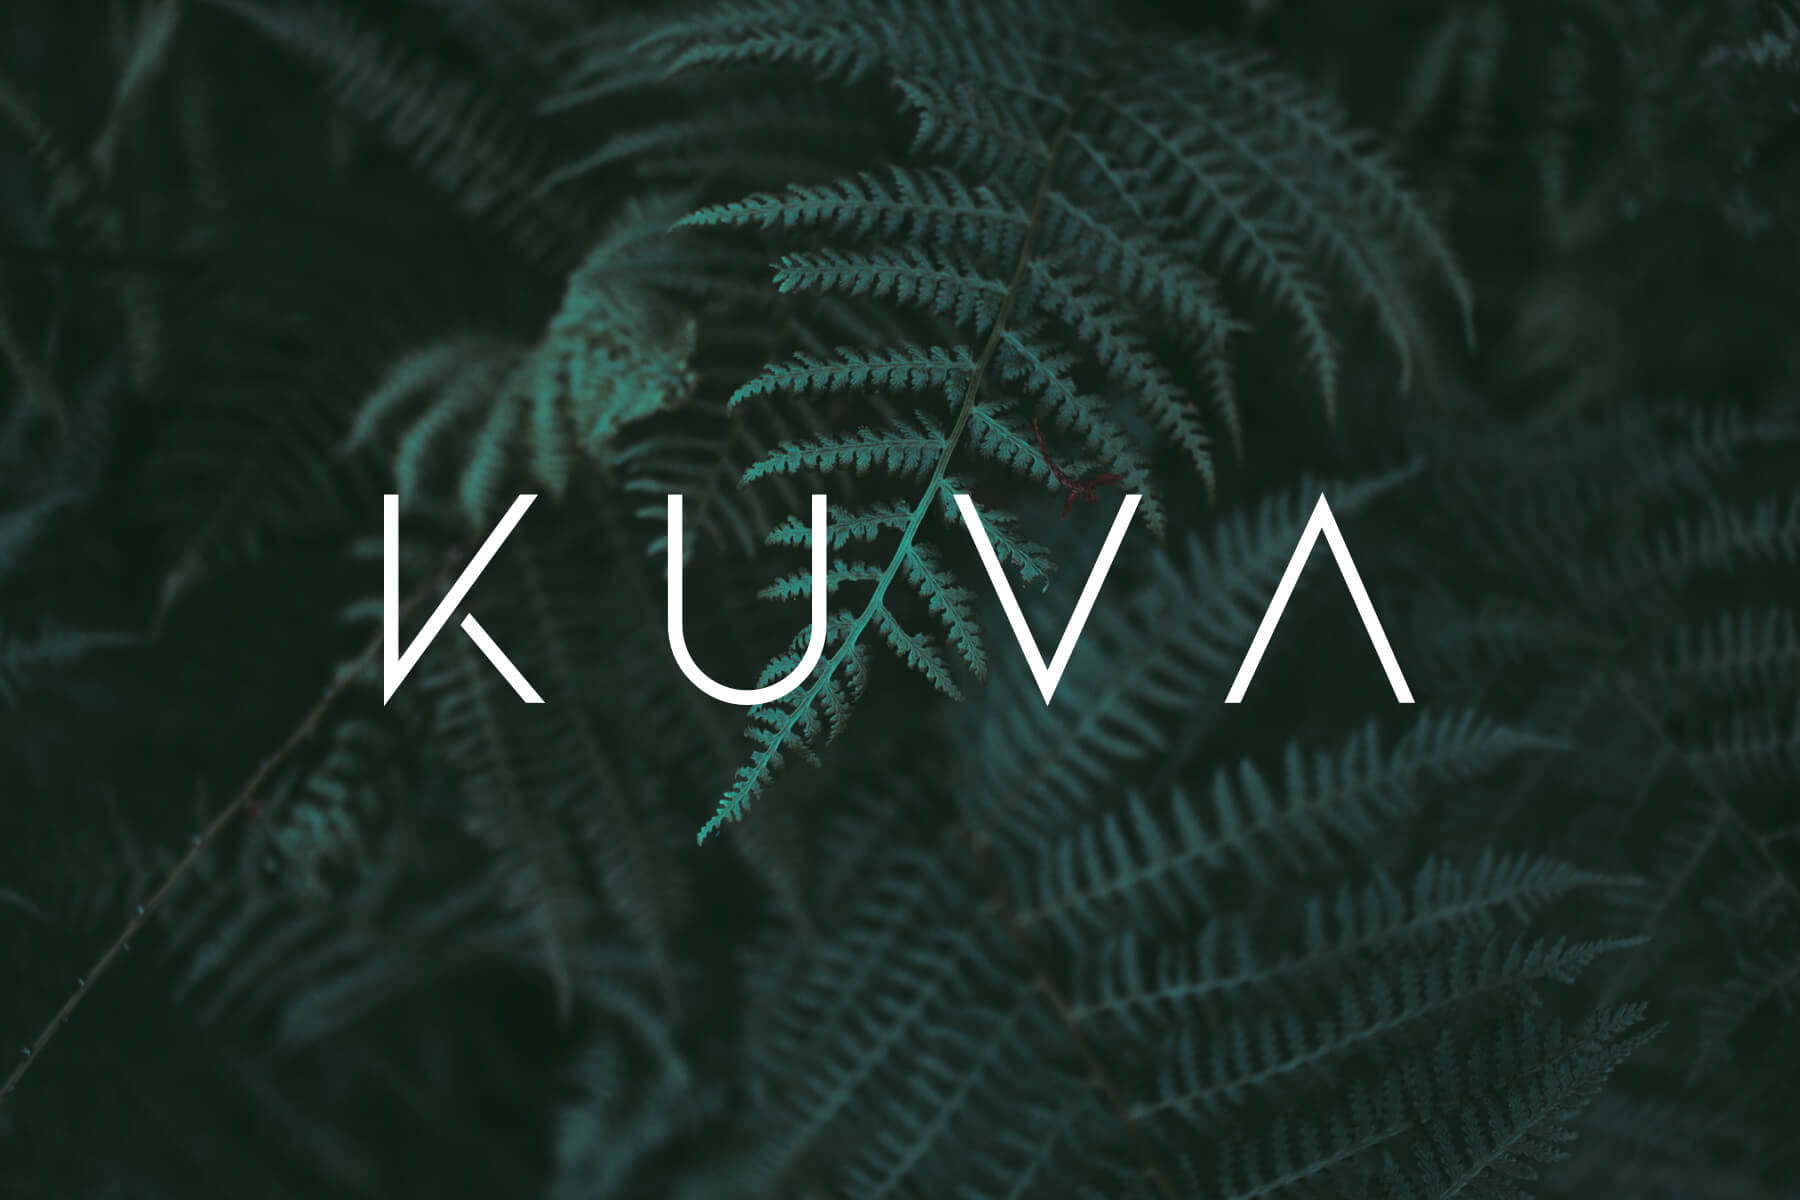 KUVA perks - Desk support staff / Client confirmation texts, emails or calls / Interactive website / modern botanical open space / Photo Studio / FREE street parking / No drama or attitude